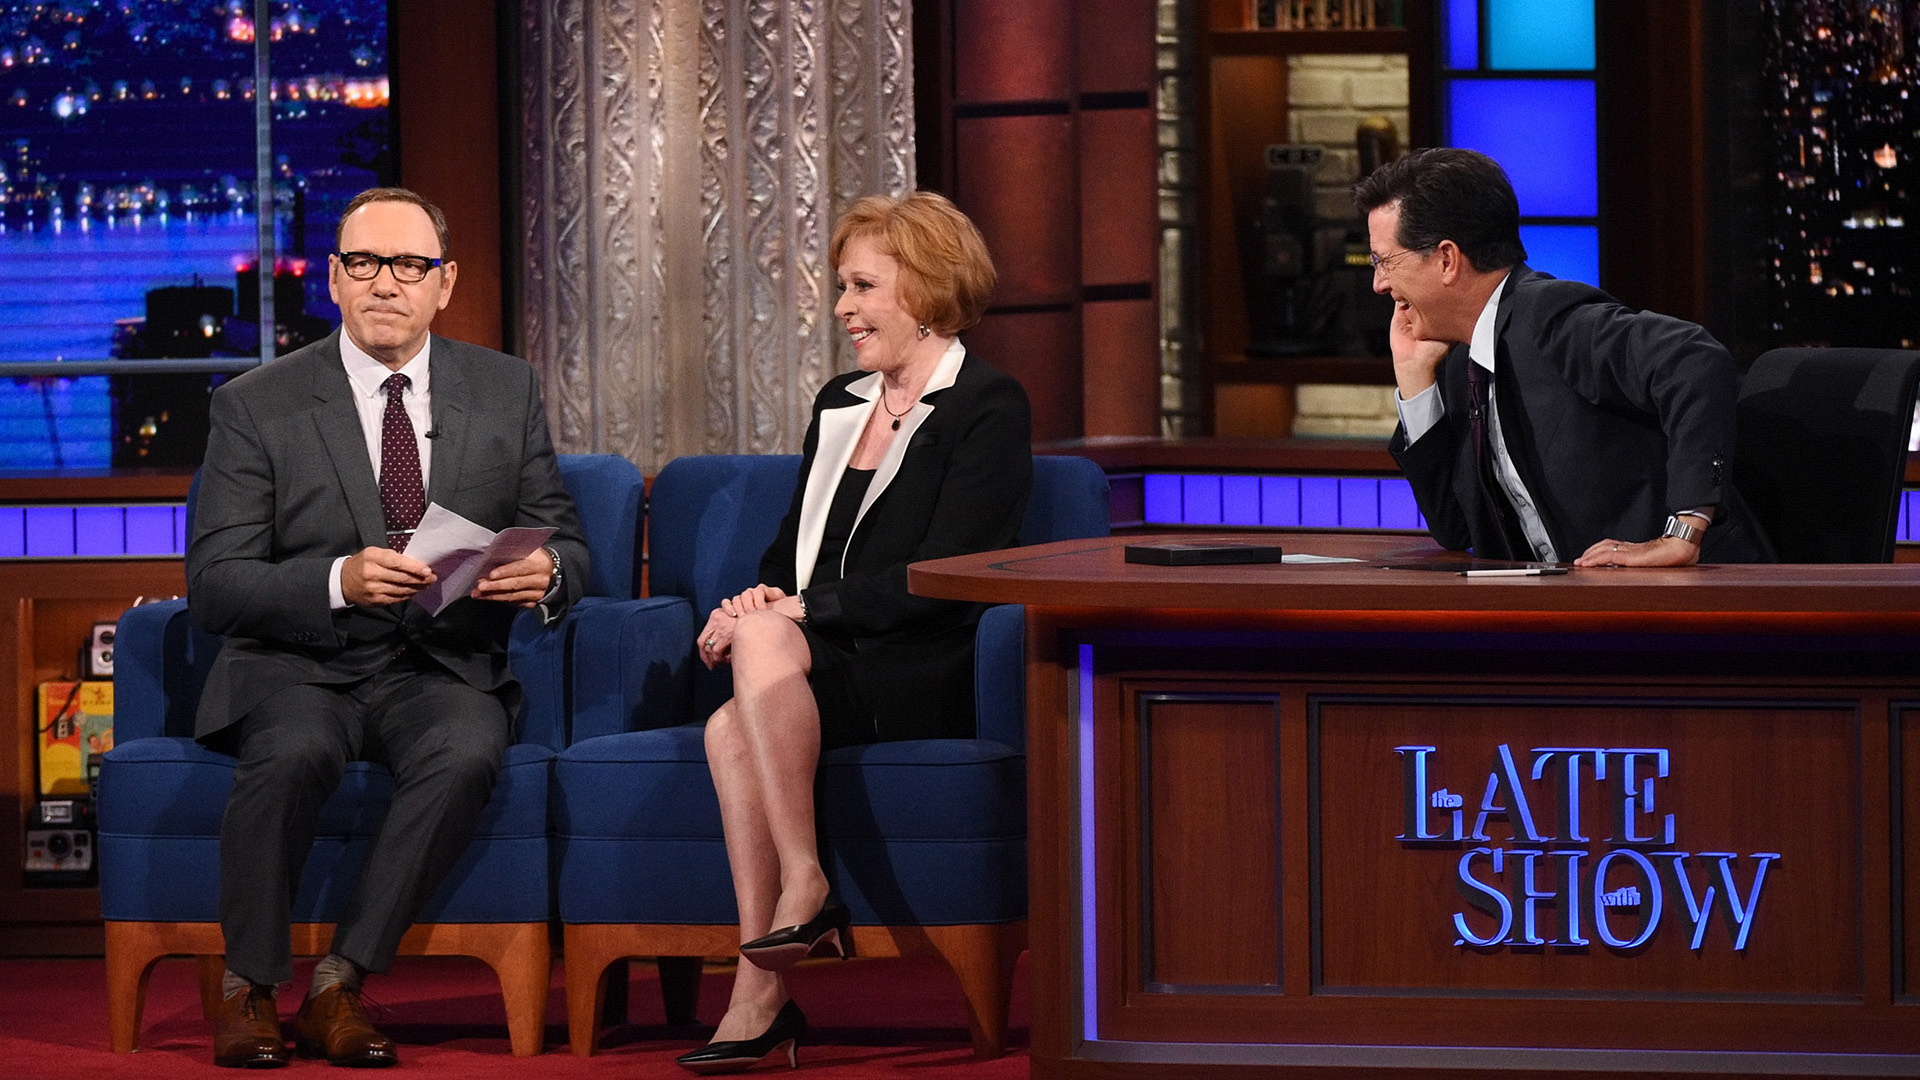 Kevin Spacey, Carol Burnett, and Stephen Colbert